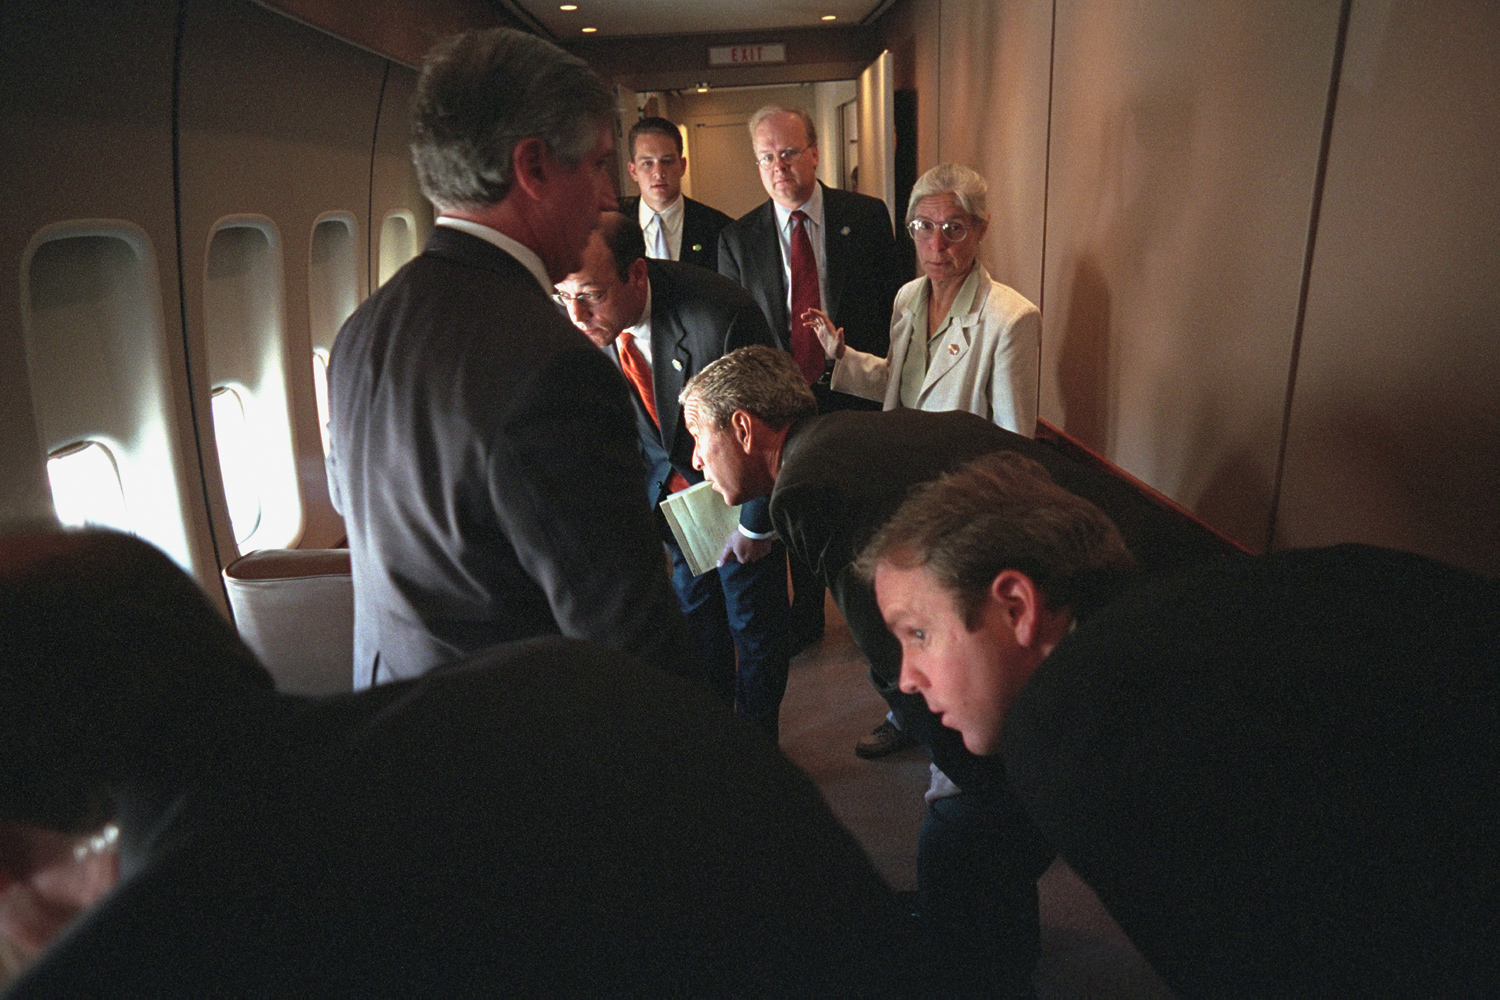 Sept. 11, 2001. President Bush and his staff look out the windows at their F-16 excort while en route to Barksdale Air Force Base. Pictured with the president are, from left to right, White House Cheif of Staff Andy Card, Press Secretary Ari Fleischer, personal assistant Blake Gottesman, Senior Advisor Karl Rove, Director of White House Situation Room Captain Deborah Loewer, and Deputy Assistant Dan Bartlett.